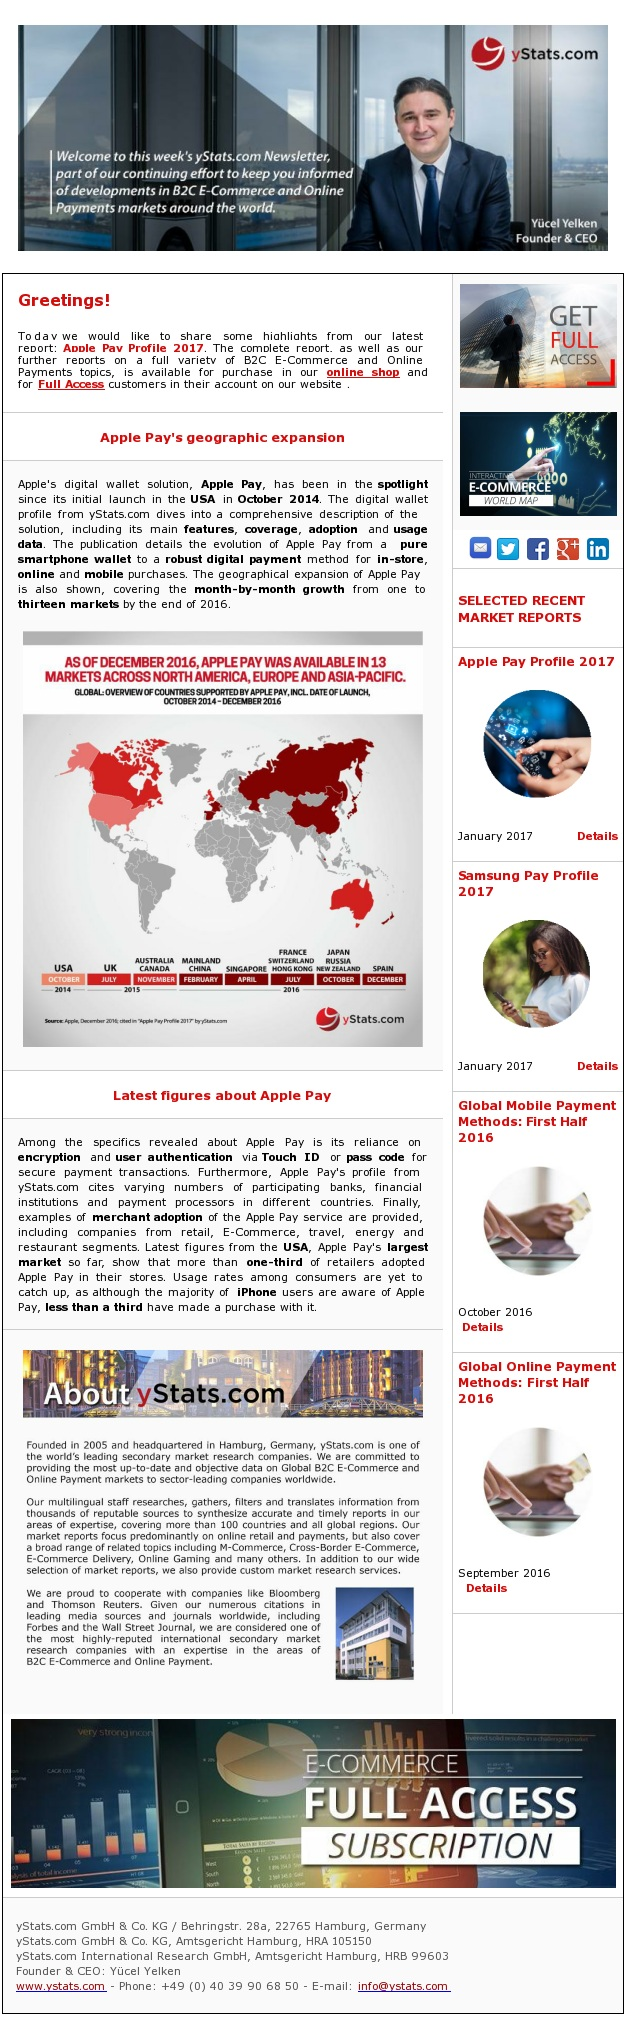 Newsletter: Apple Pay's geographic expansion  Key facts about Apple Pay revealed in a digital wallet profile  Apple's digital wallet solution, Apple Pay, has been in the spotlight since its initial launch in the USA in October 2014. The digital wallet profile from yStats.com dives into a comprehensive description of the solution, including its main features, coverage, adoption and usage data. The publication details the evolution of Apple Pay from a pure smartphone wallet to a robust digital payment method for in-store, online and mobile purchases. The geographical expansion of Apple Pay is also shown, covering the month-by-month growth from one to thirteen markets by the end of 2016.  Among the specifics revealed about Apple Pay is its reliance on encryption and user authentication via Touch ID or pass code for secure payment transactions. Furthermore, Apple Pay's profile from yStats.com cites varying numbers of participating banks, financial institutions and payment processors in different countries. Finally, examples of merchant adoption of the Apple Pay service are provided, including companies from retail, E-Commerce, travel, energy and restaurant segments. Latest figures from the USA, Apple Pay's largest market so far, show that more than one-third of retailers adopted Apple Pay in their stores. Usage rates among consumers are yet to catch up, as although the majority of iPhone users are aware of Apple Pay, less than a third have made a purchase with it.